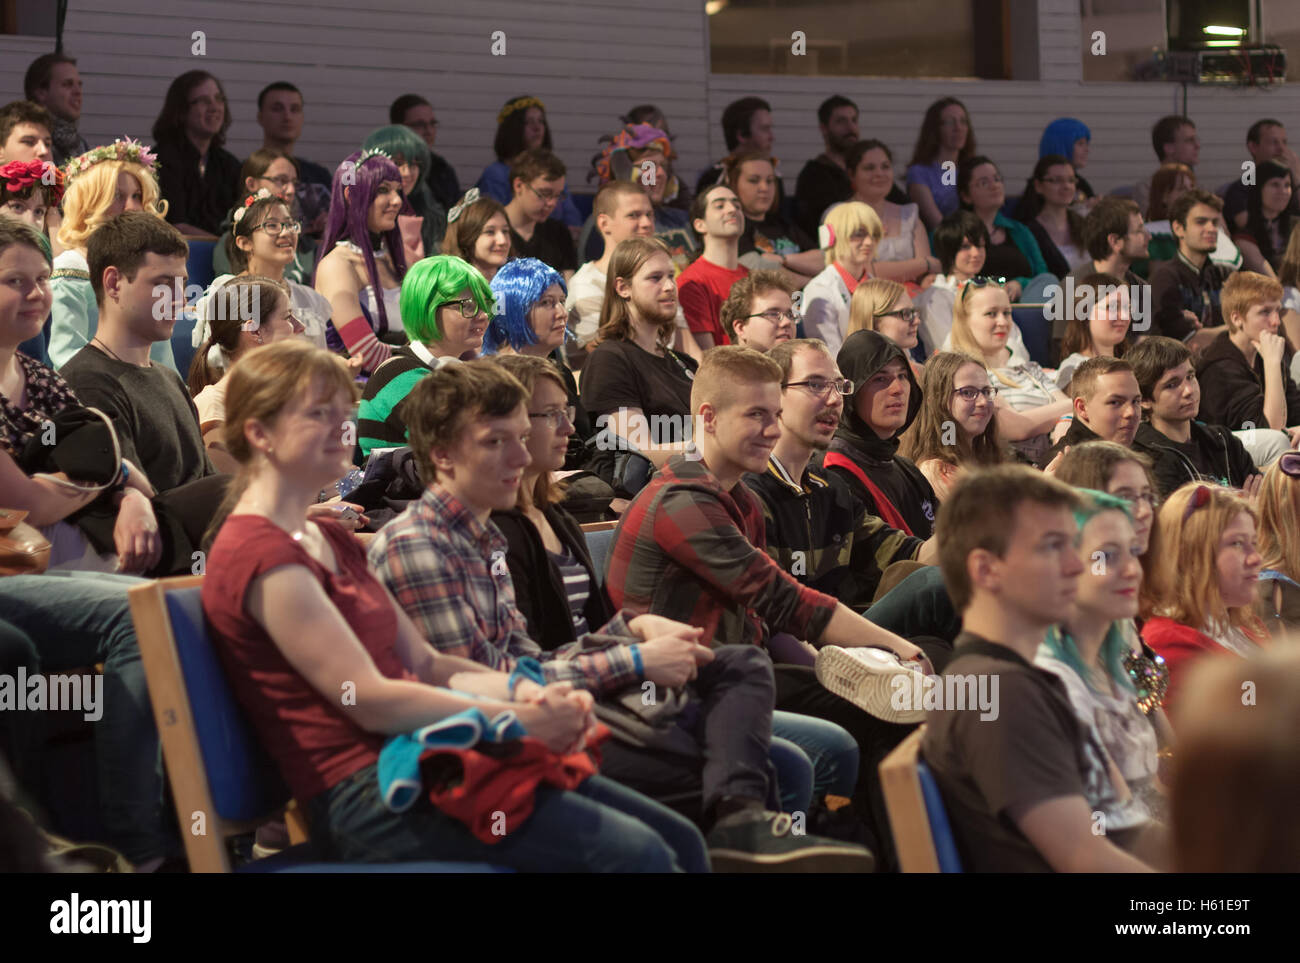 BRNO, CZECH REPUBLIC - APRIL 30, 2016: Auditorium of young people  in lecture hall listens talks  at Animefest, - Stock Image